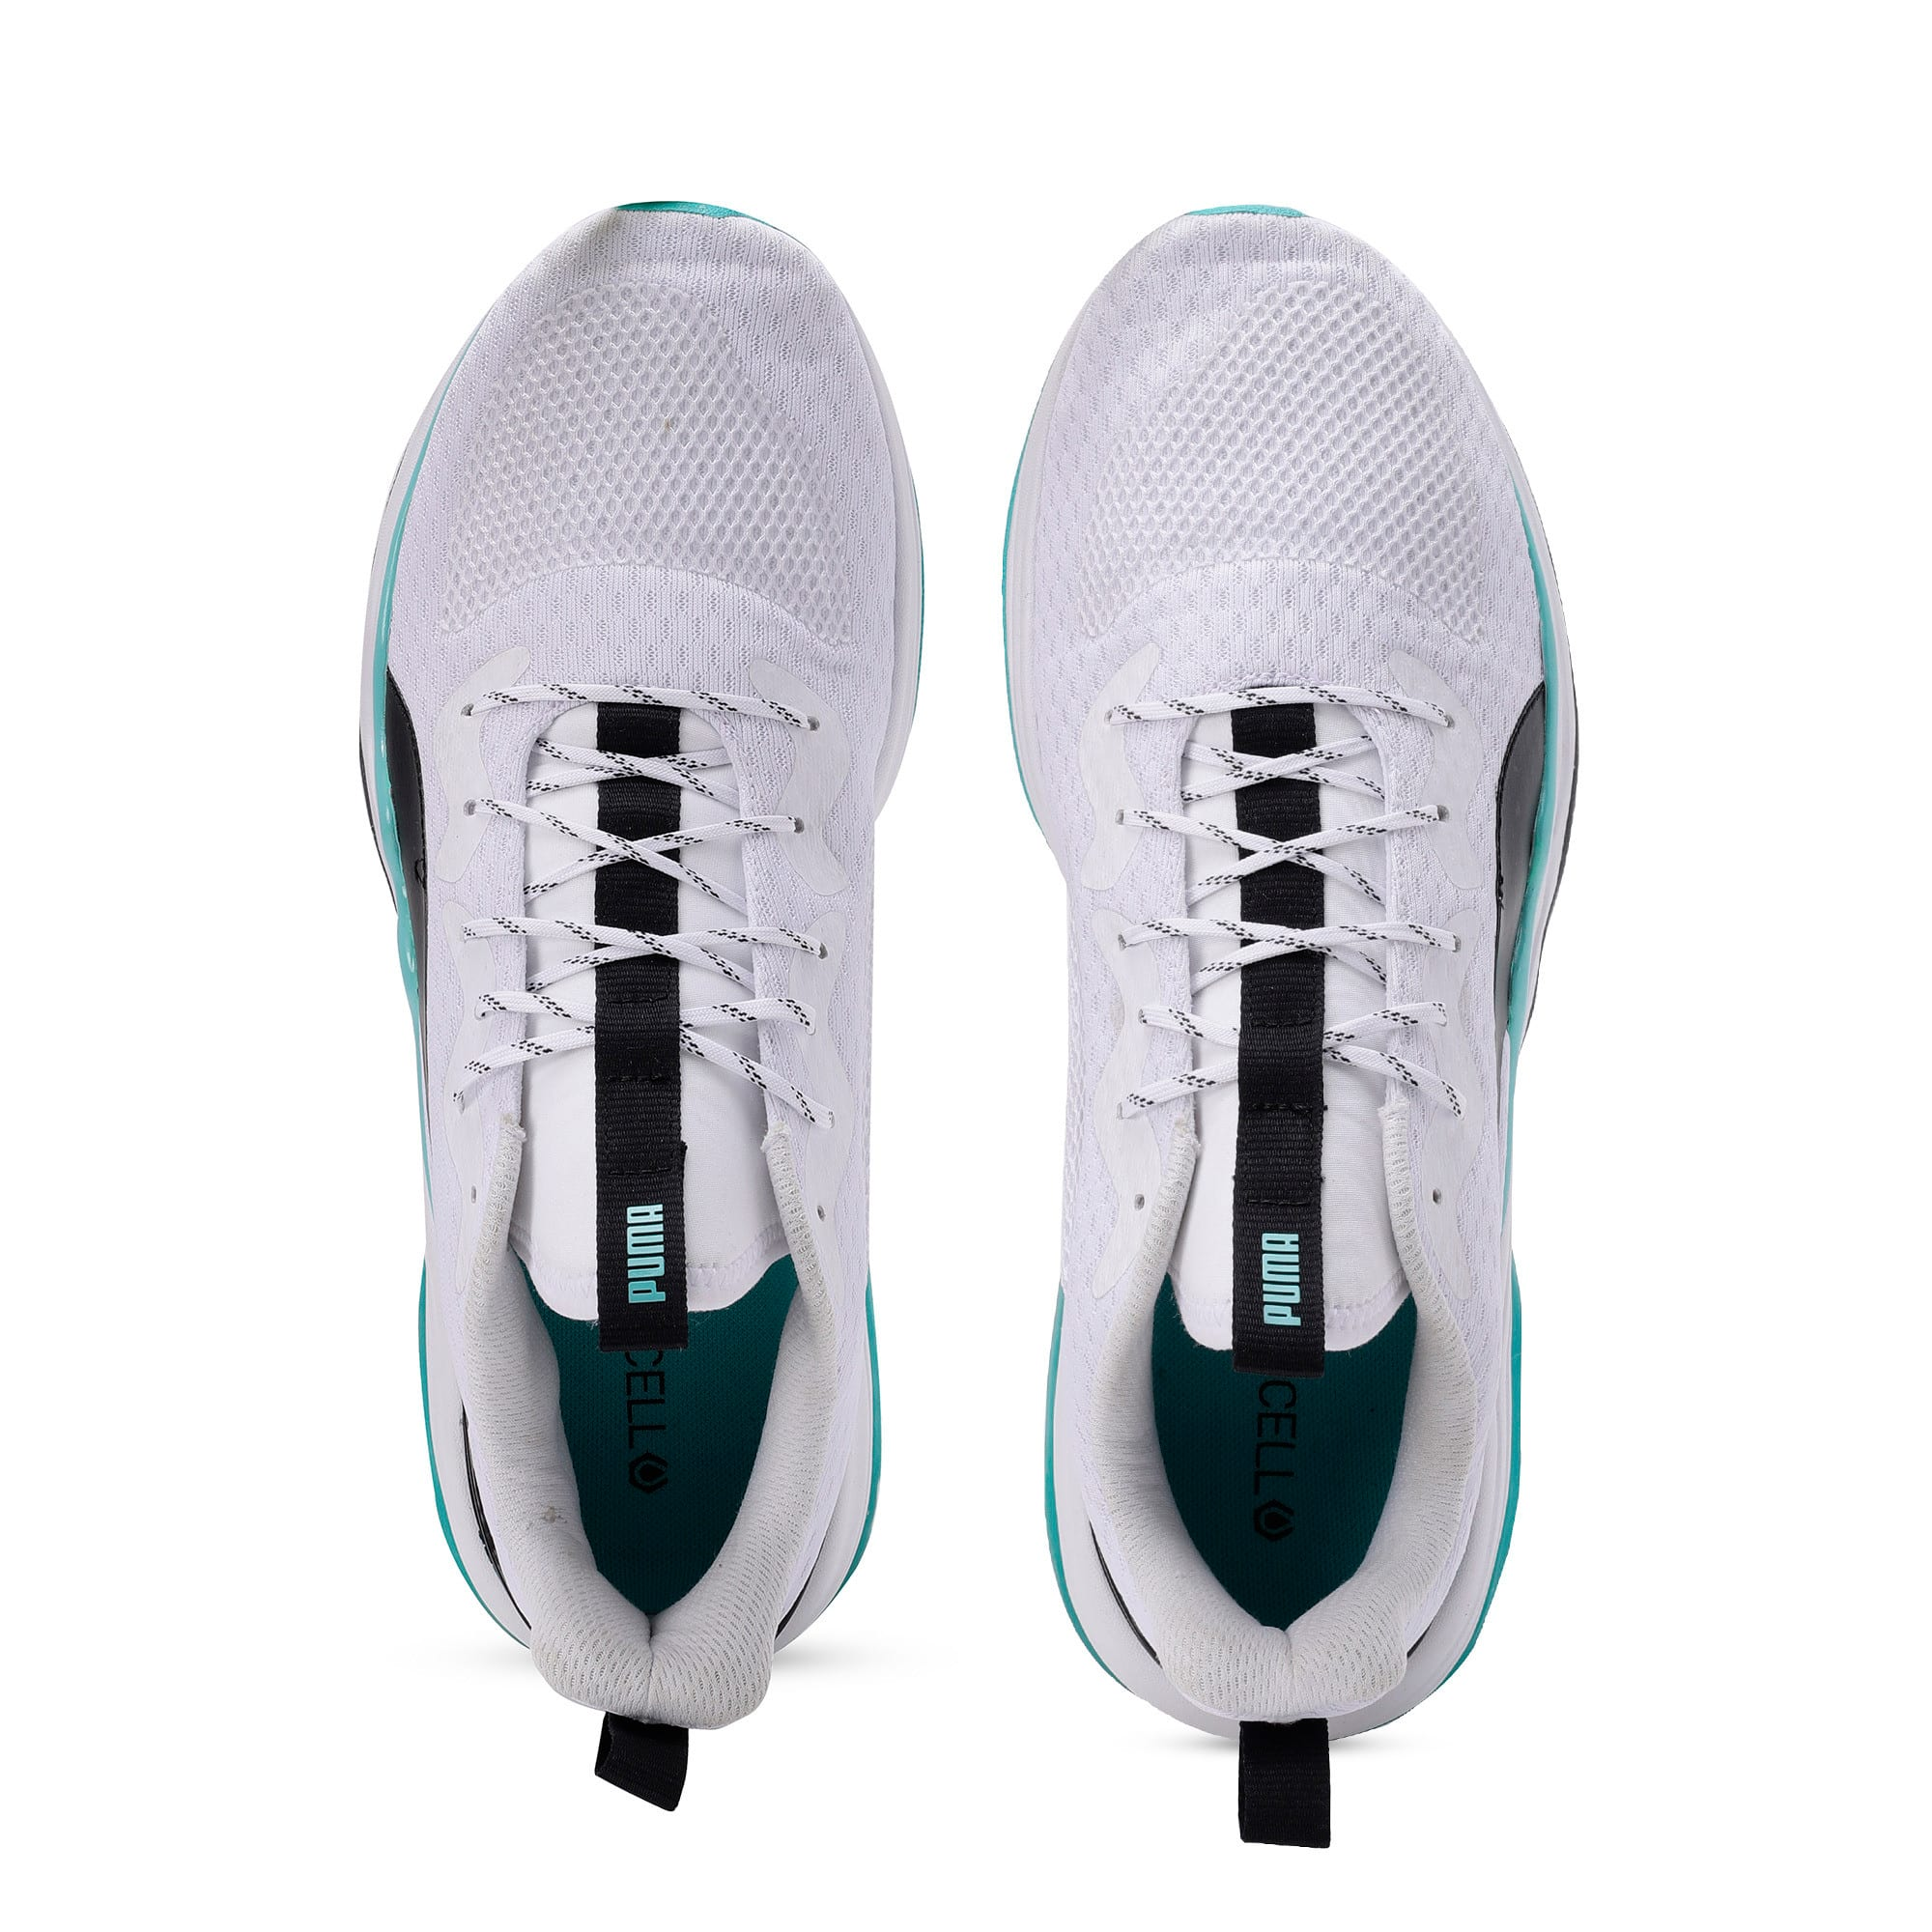 Thumbnail 9 of LQDCELL Tension Men's Training Shoes, Puma White-Blue Turquoise, medium-IND